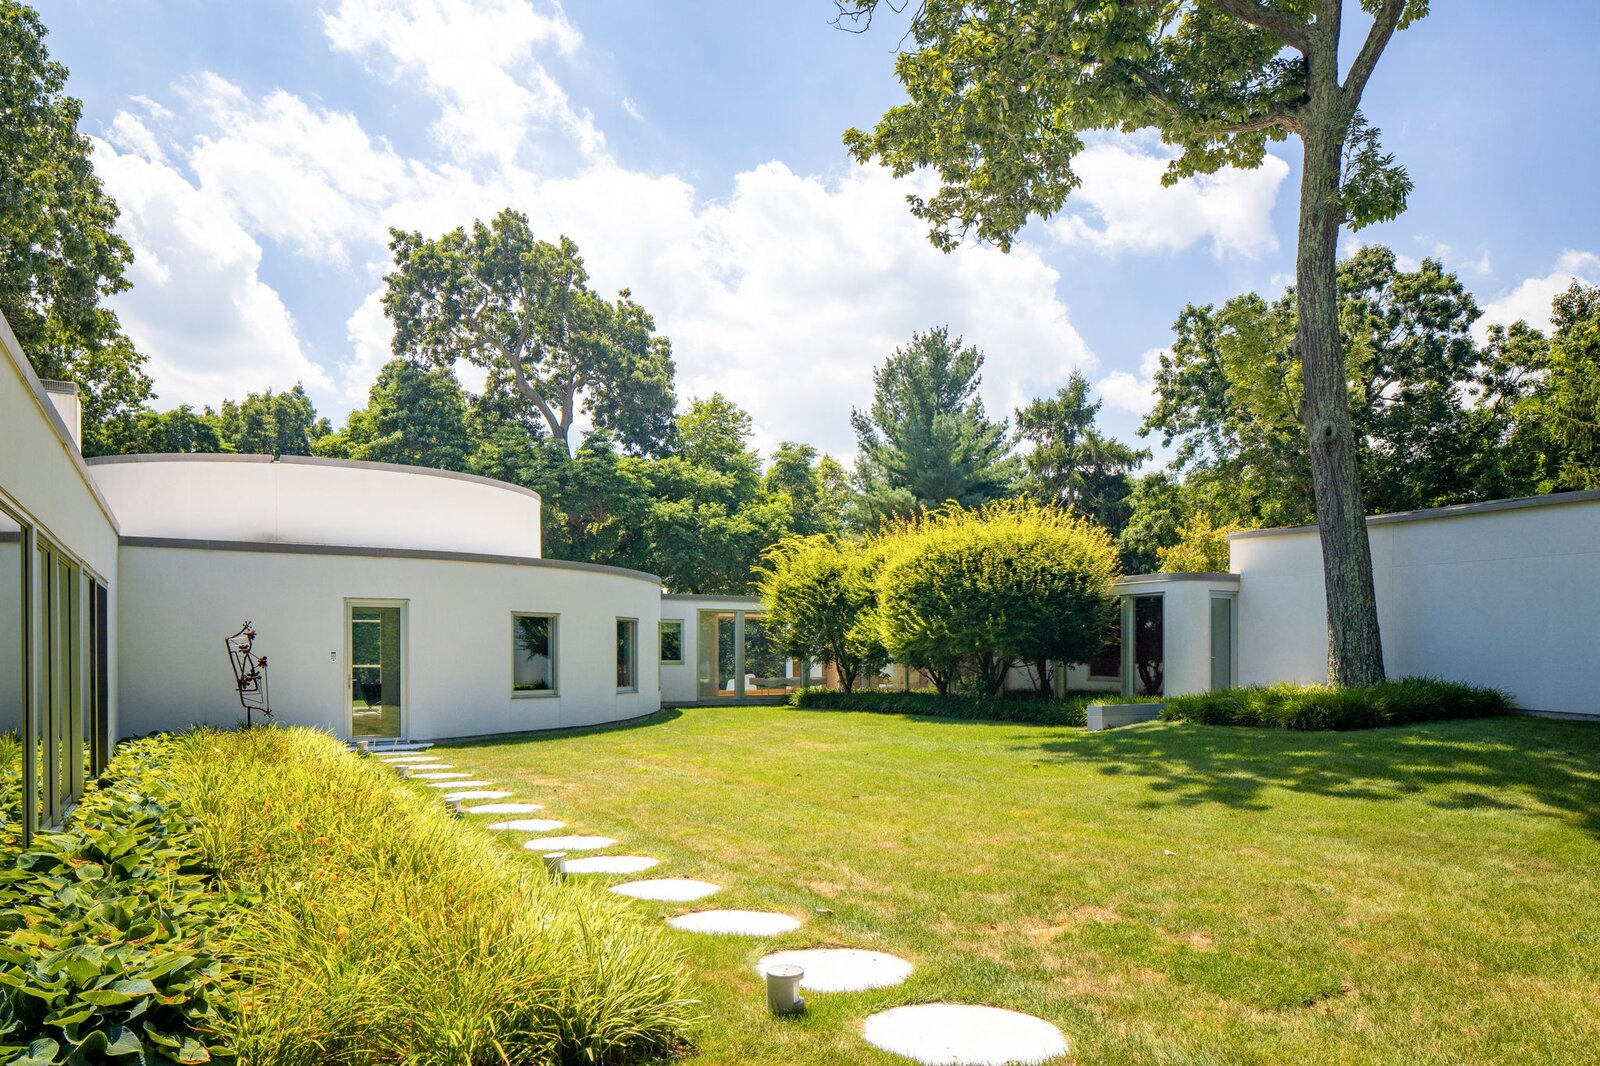 Exterior, Concrete Siding Material, House Building Type, and Flat RoofLine The Harrison House surrounds a green courtyard on three sides.  Photo 2 of 10 in After a Herculean Renovation, Architect Wallace Harrison's Landmarked Home Seeks a New Caretaker